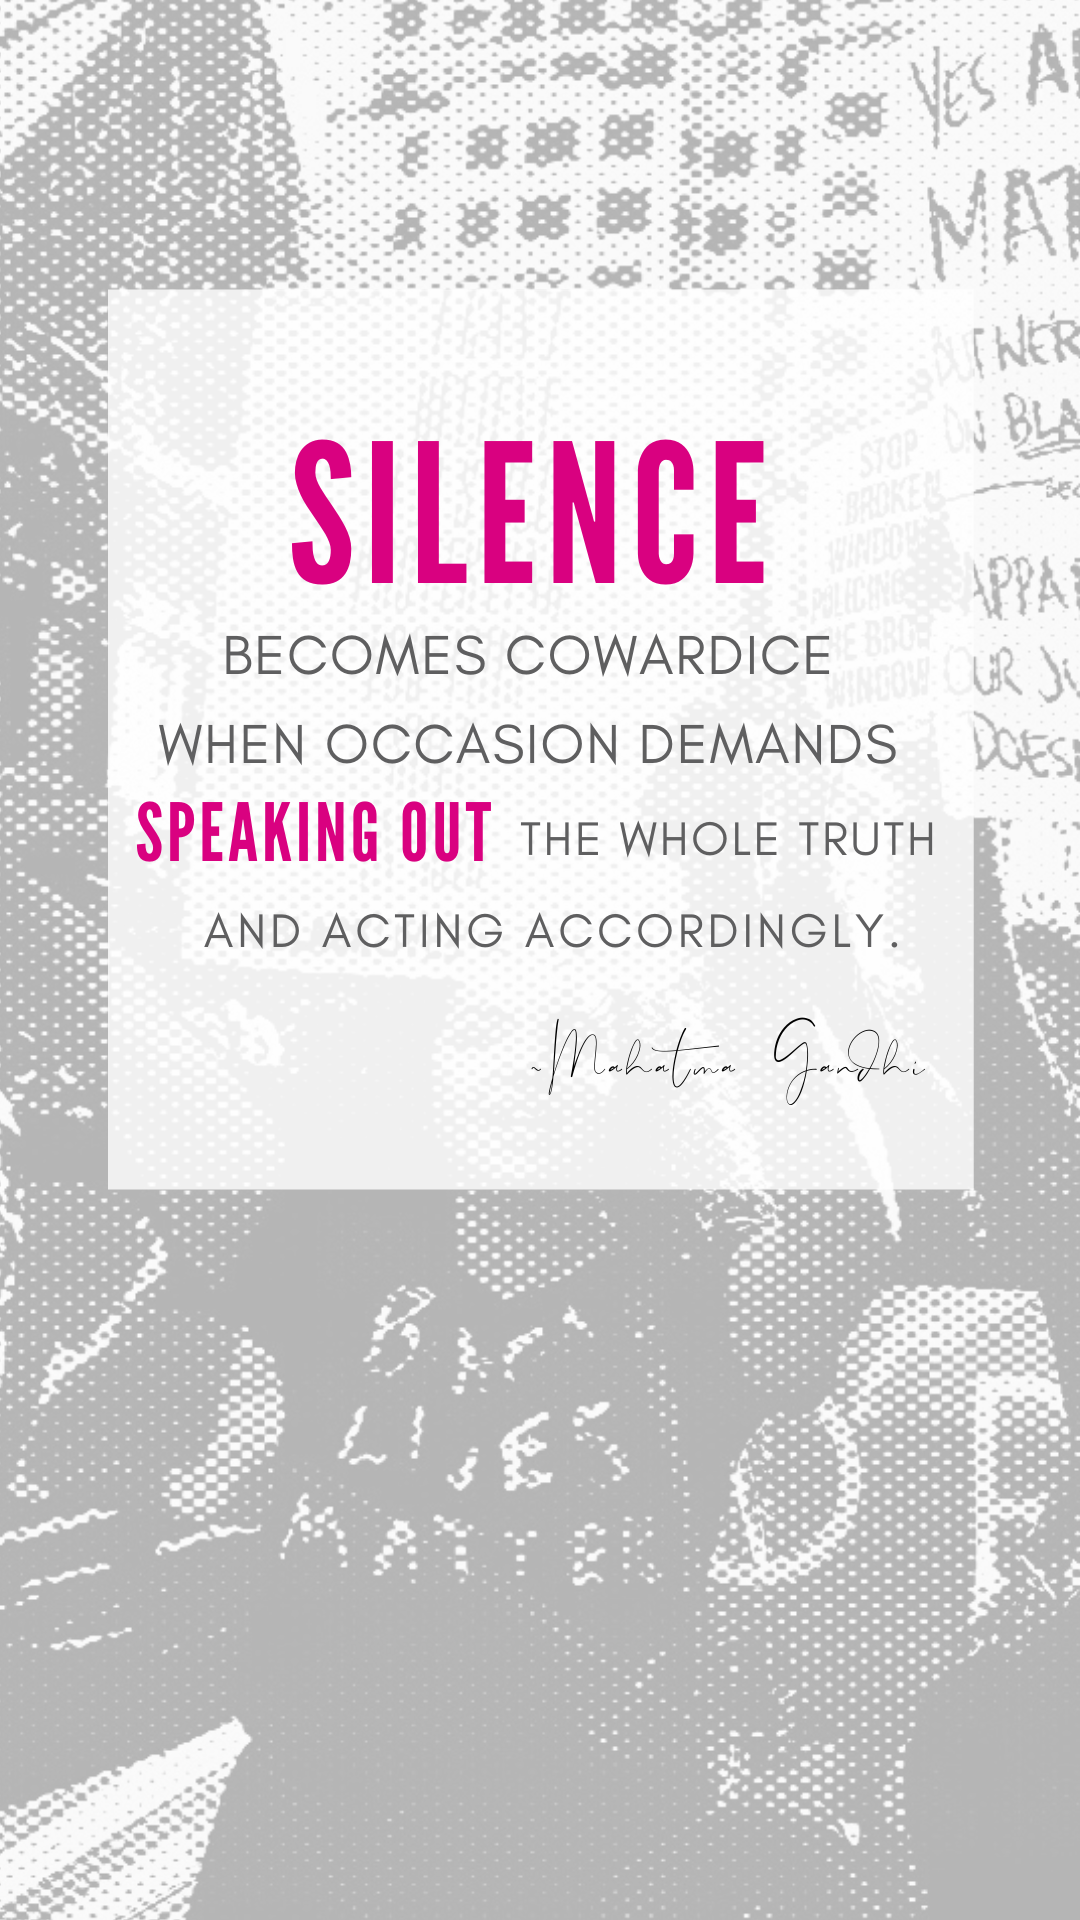 quote by Mahatma Gandhi about speaking up against oppression and racism